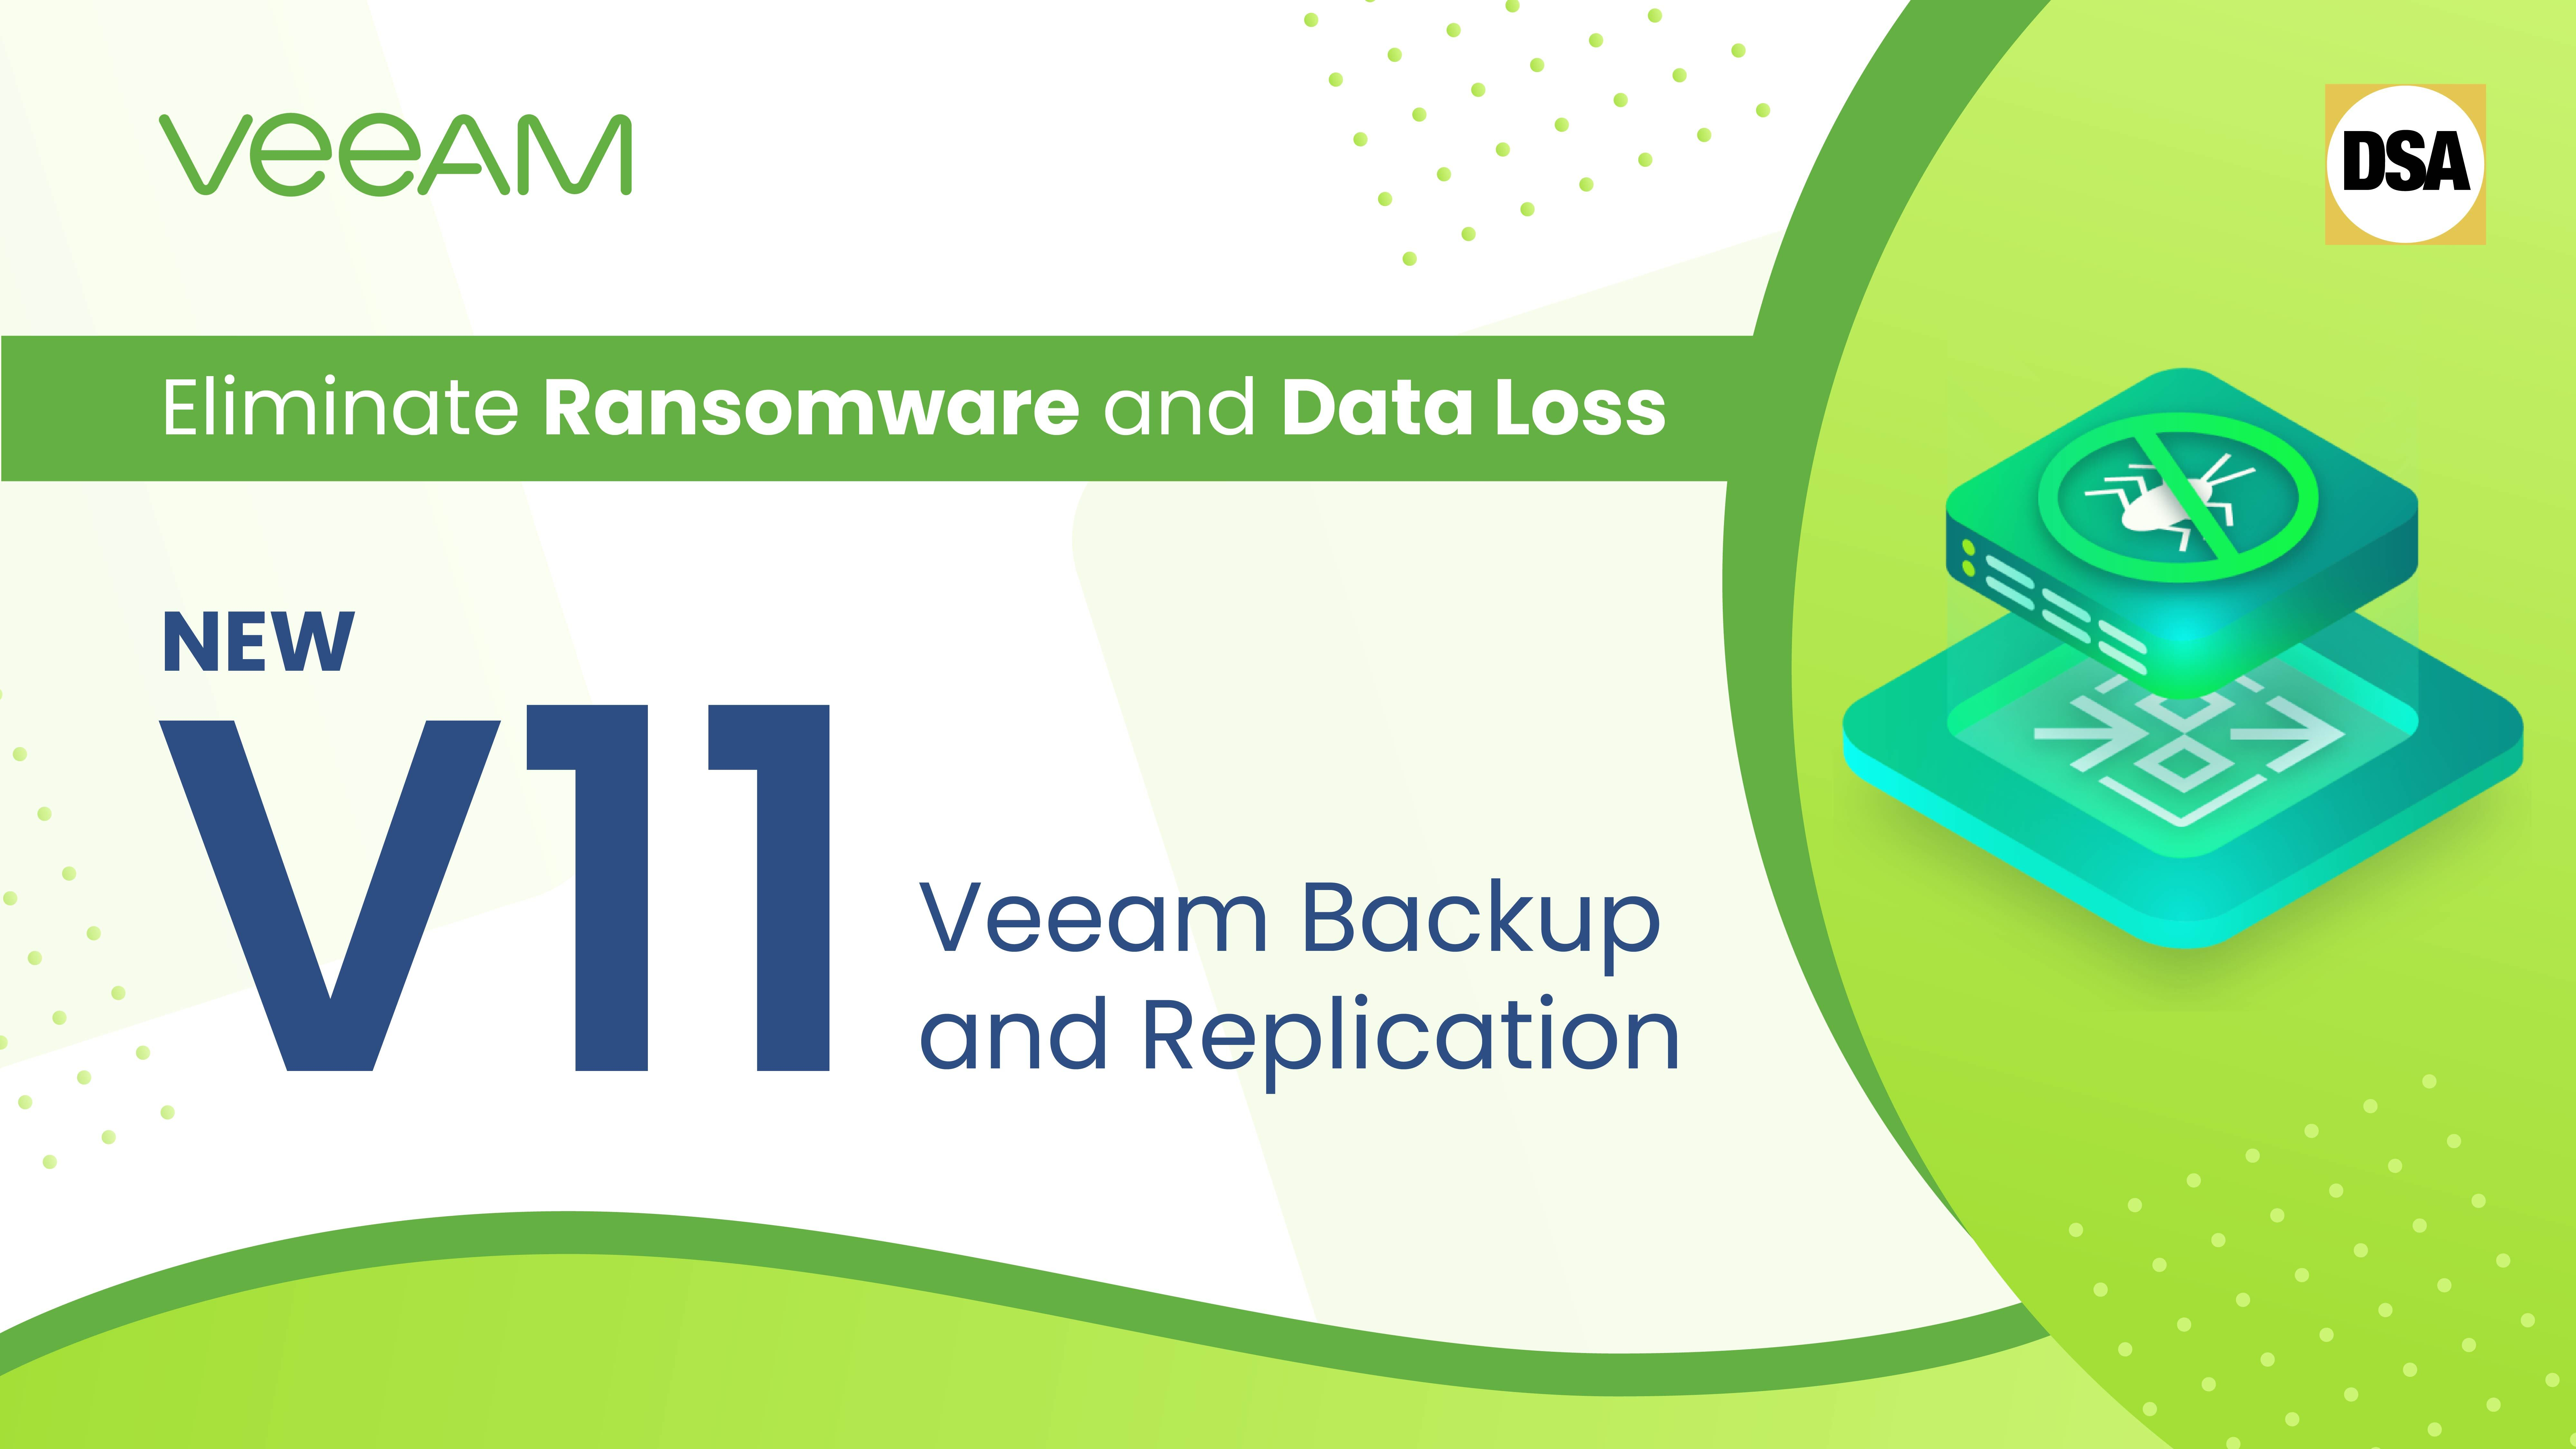 Webinar - Eliminate Ransomware and Data Loss with the New Veeam Backup and Replication v11.